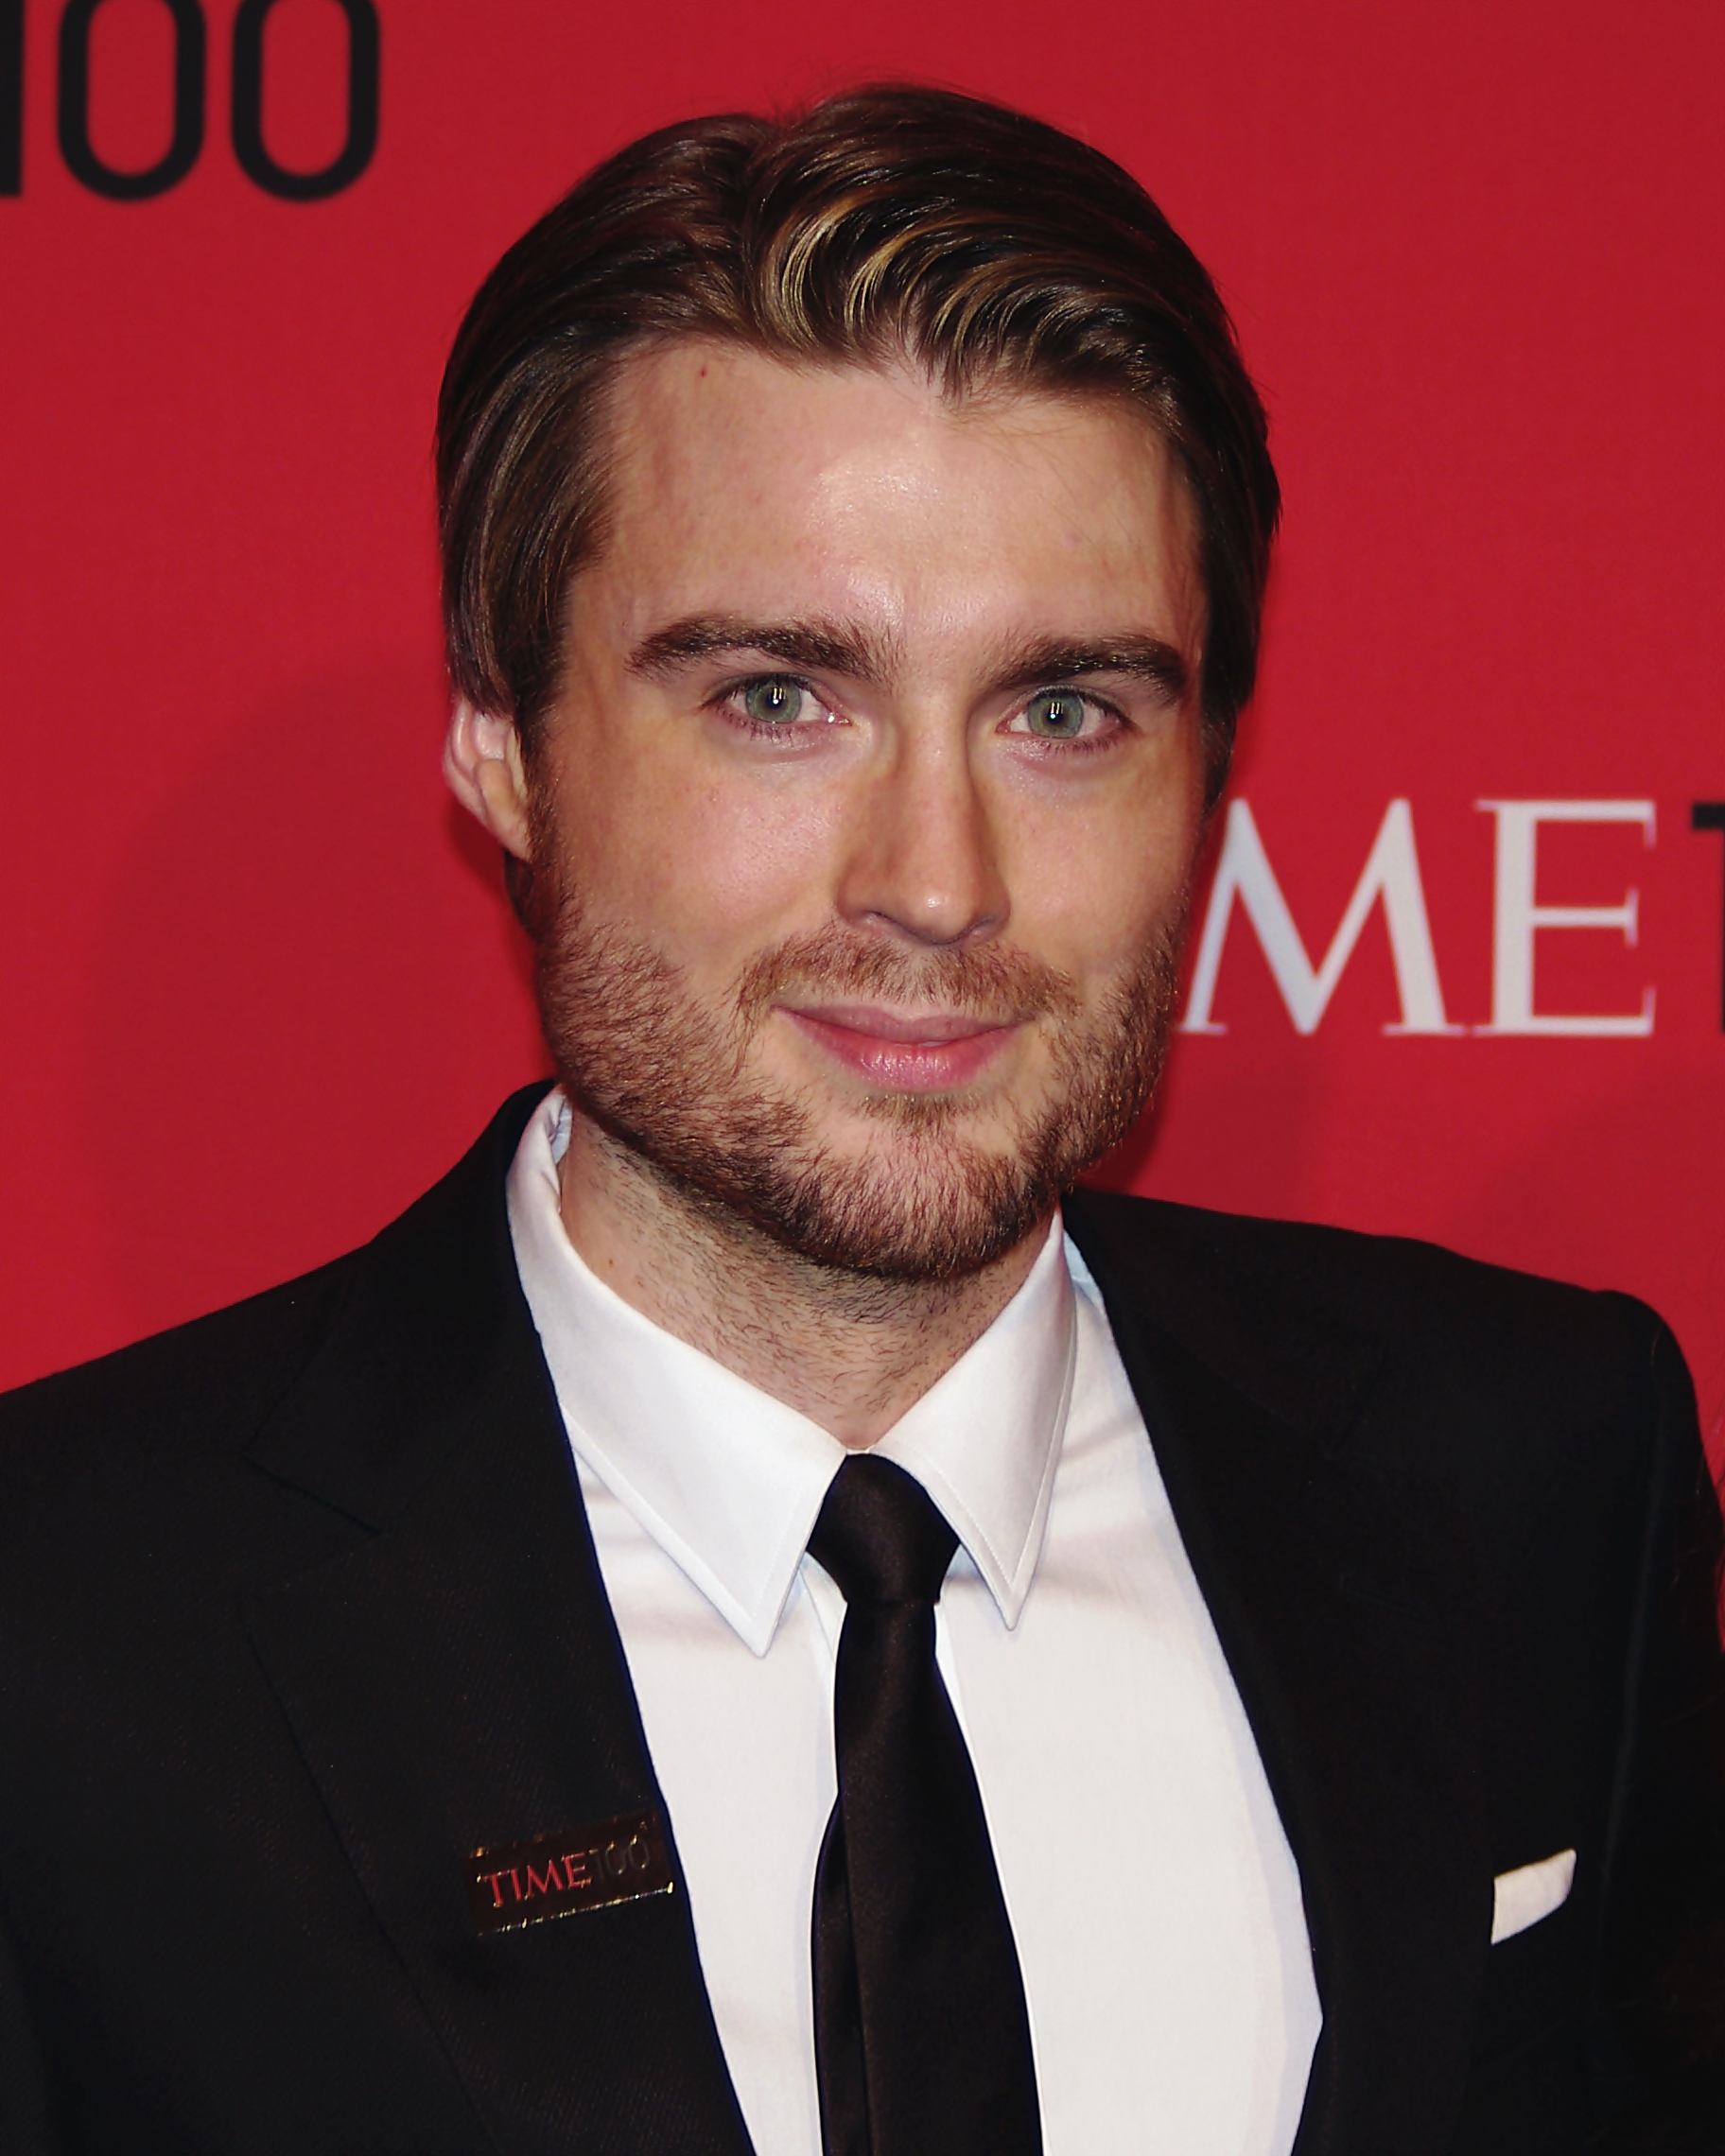 Pete Cashmore earned a  million dollar salary, leaving the net worth at 120 million in 2017